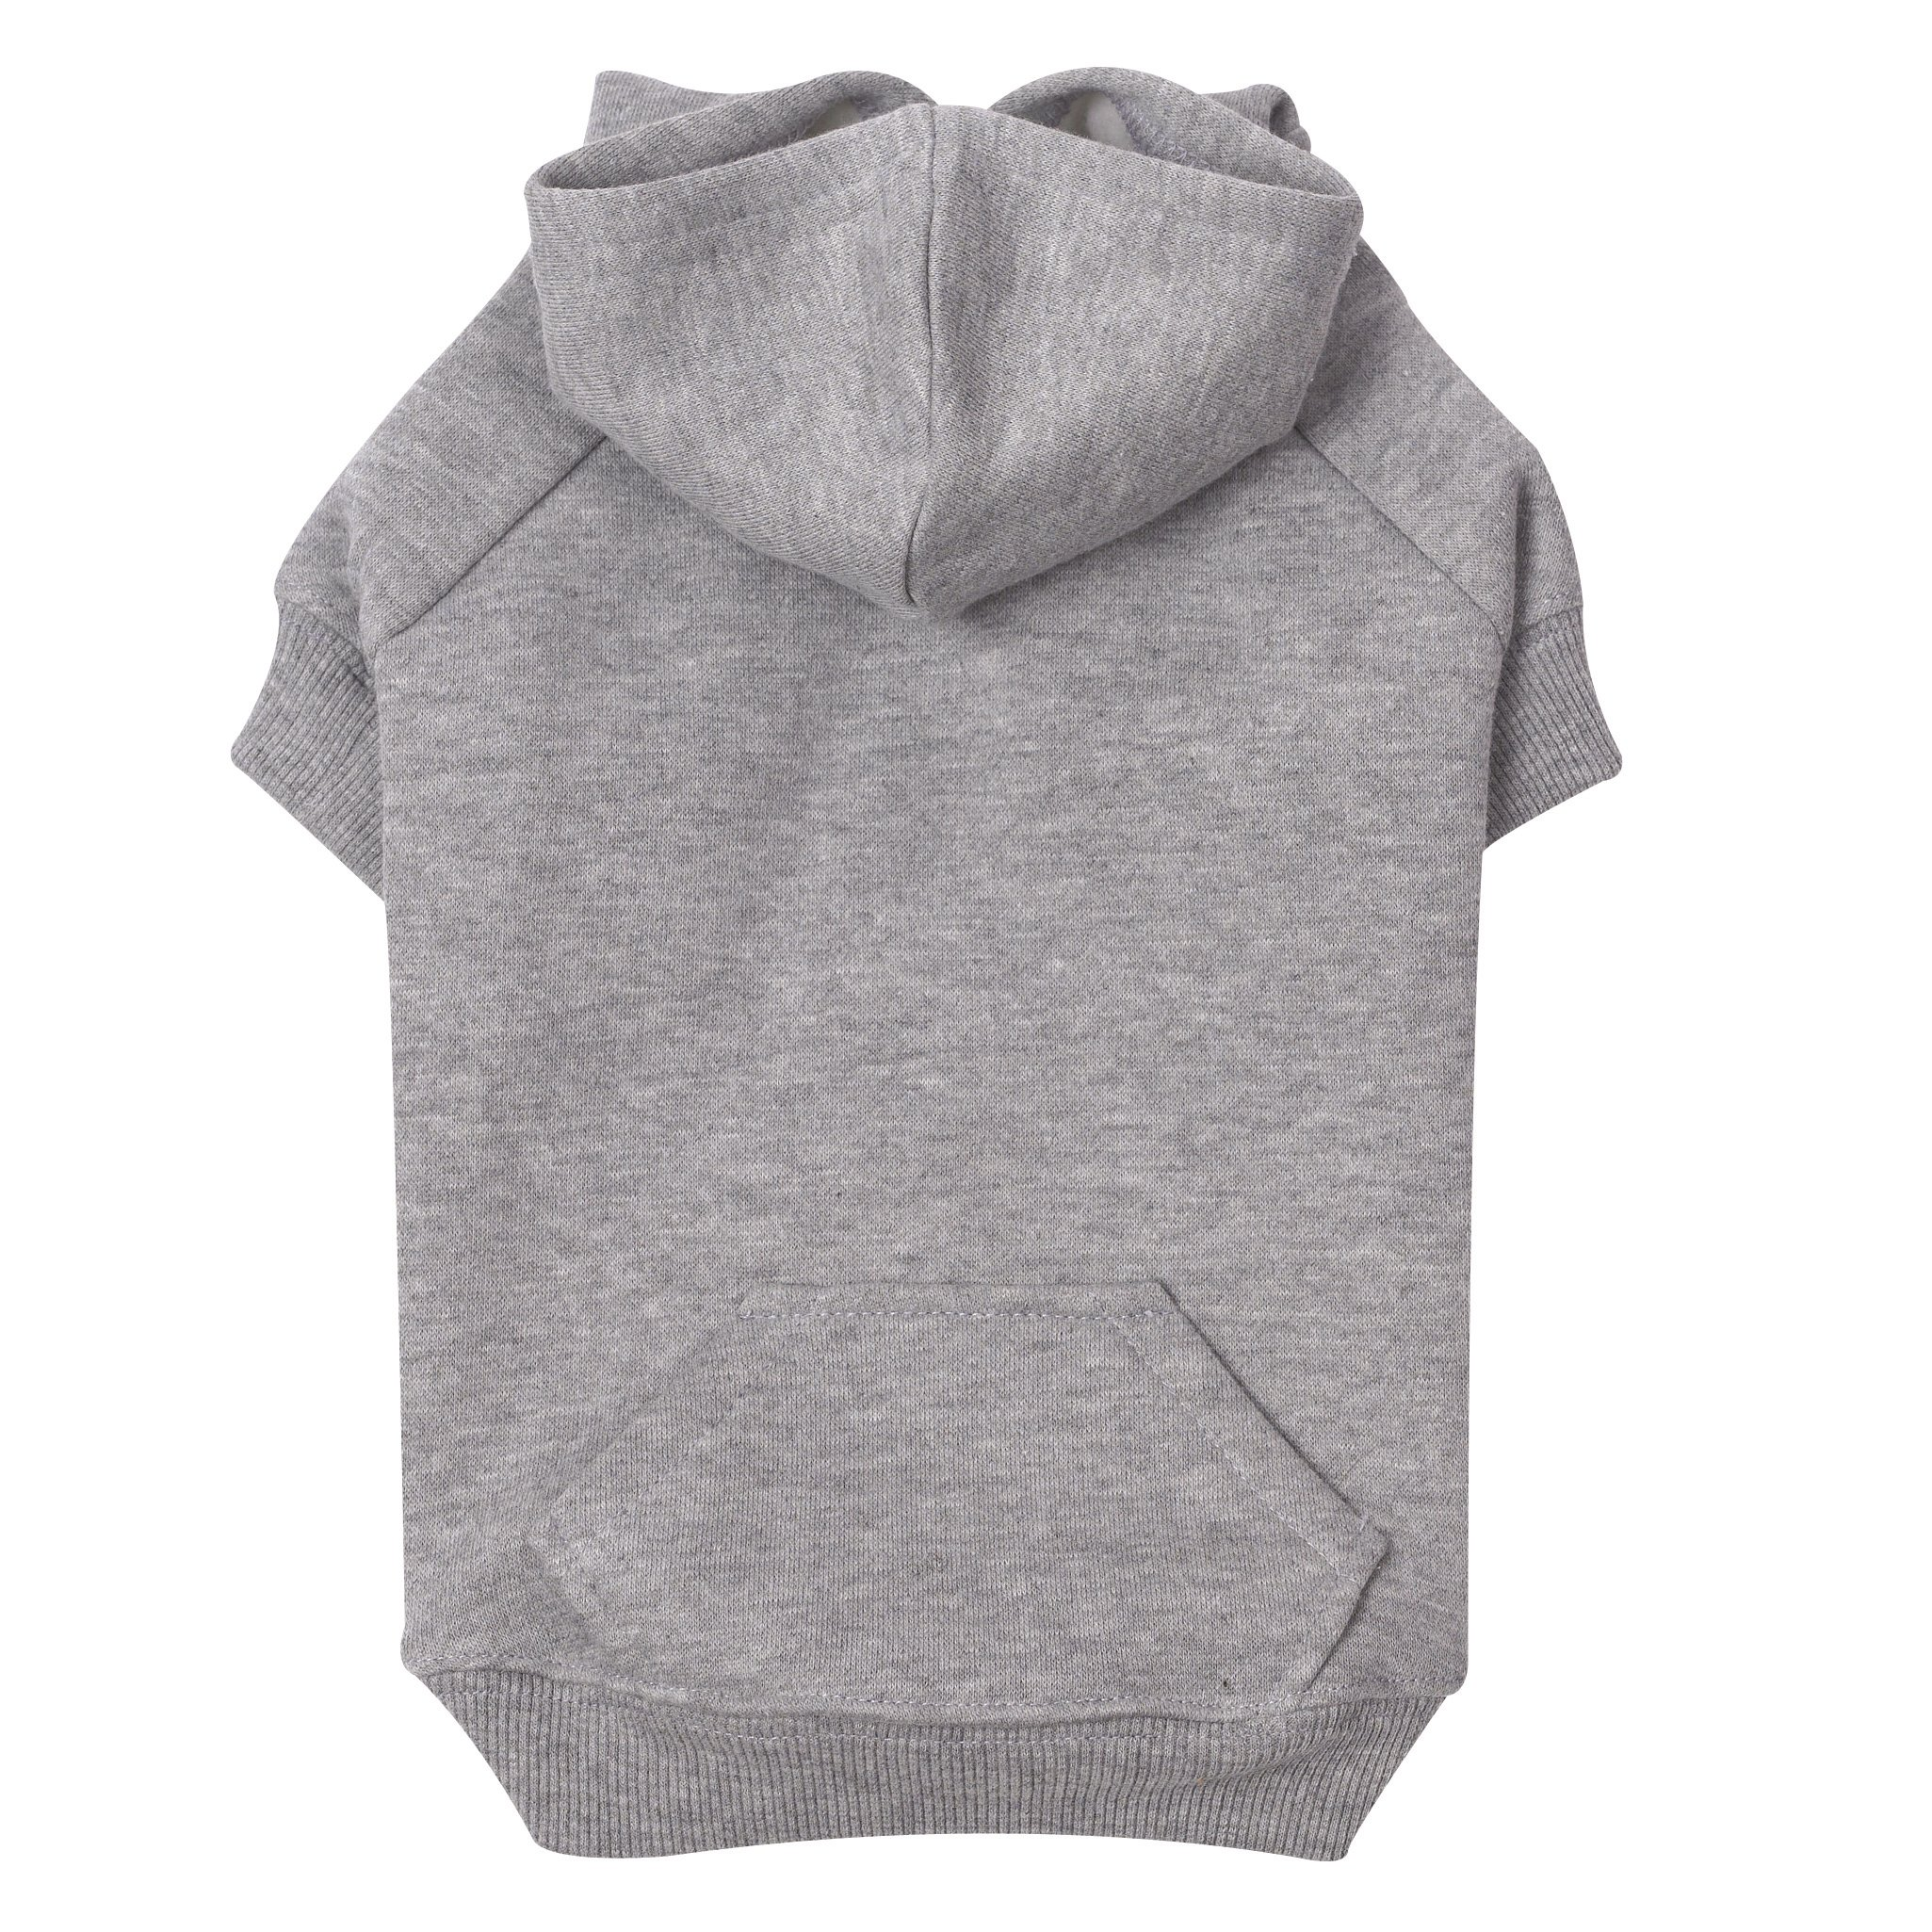 Zack & Zoey Basic Hoodie for Dogs, 12'' Small, Heather Gray